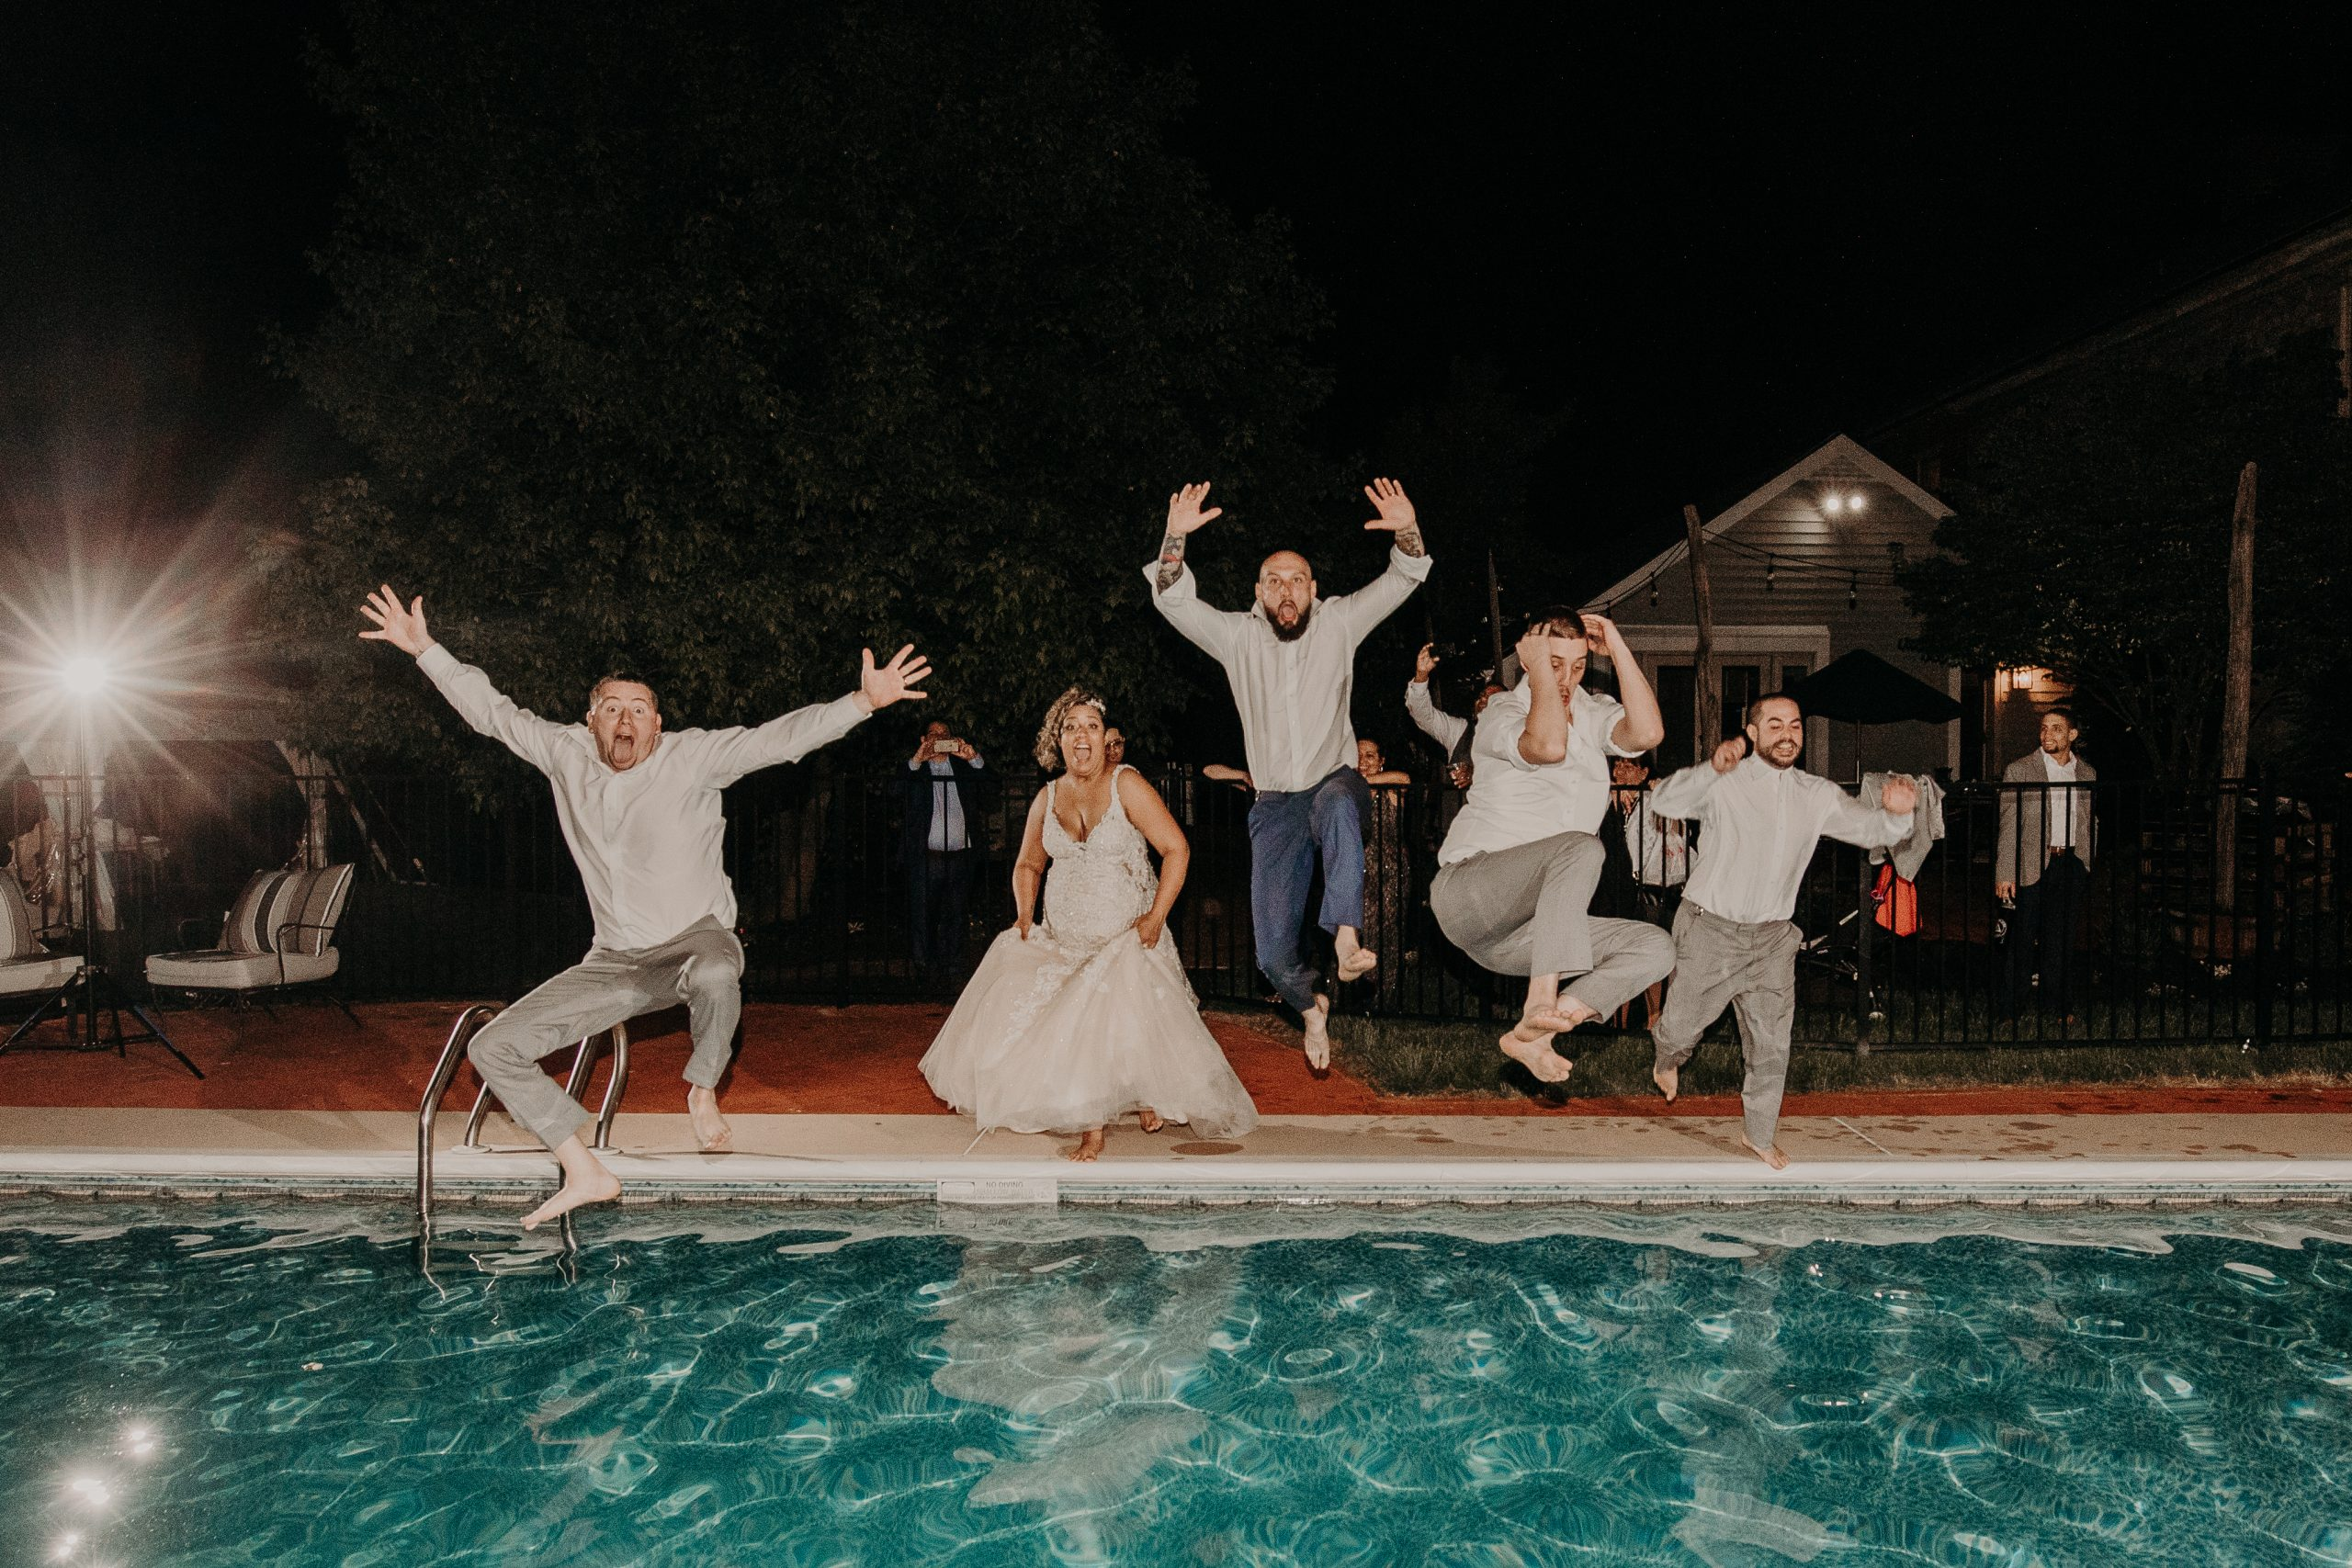 The bride and groom take a dive. Christine and Richard wed on the Chestnut Hill Villa grounds on May of 2019. Captured by Garnet Dahlia Photography and featured on Dream Weddings.